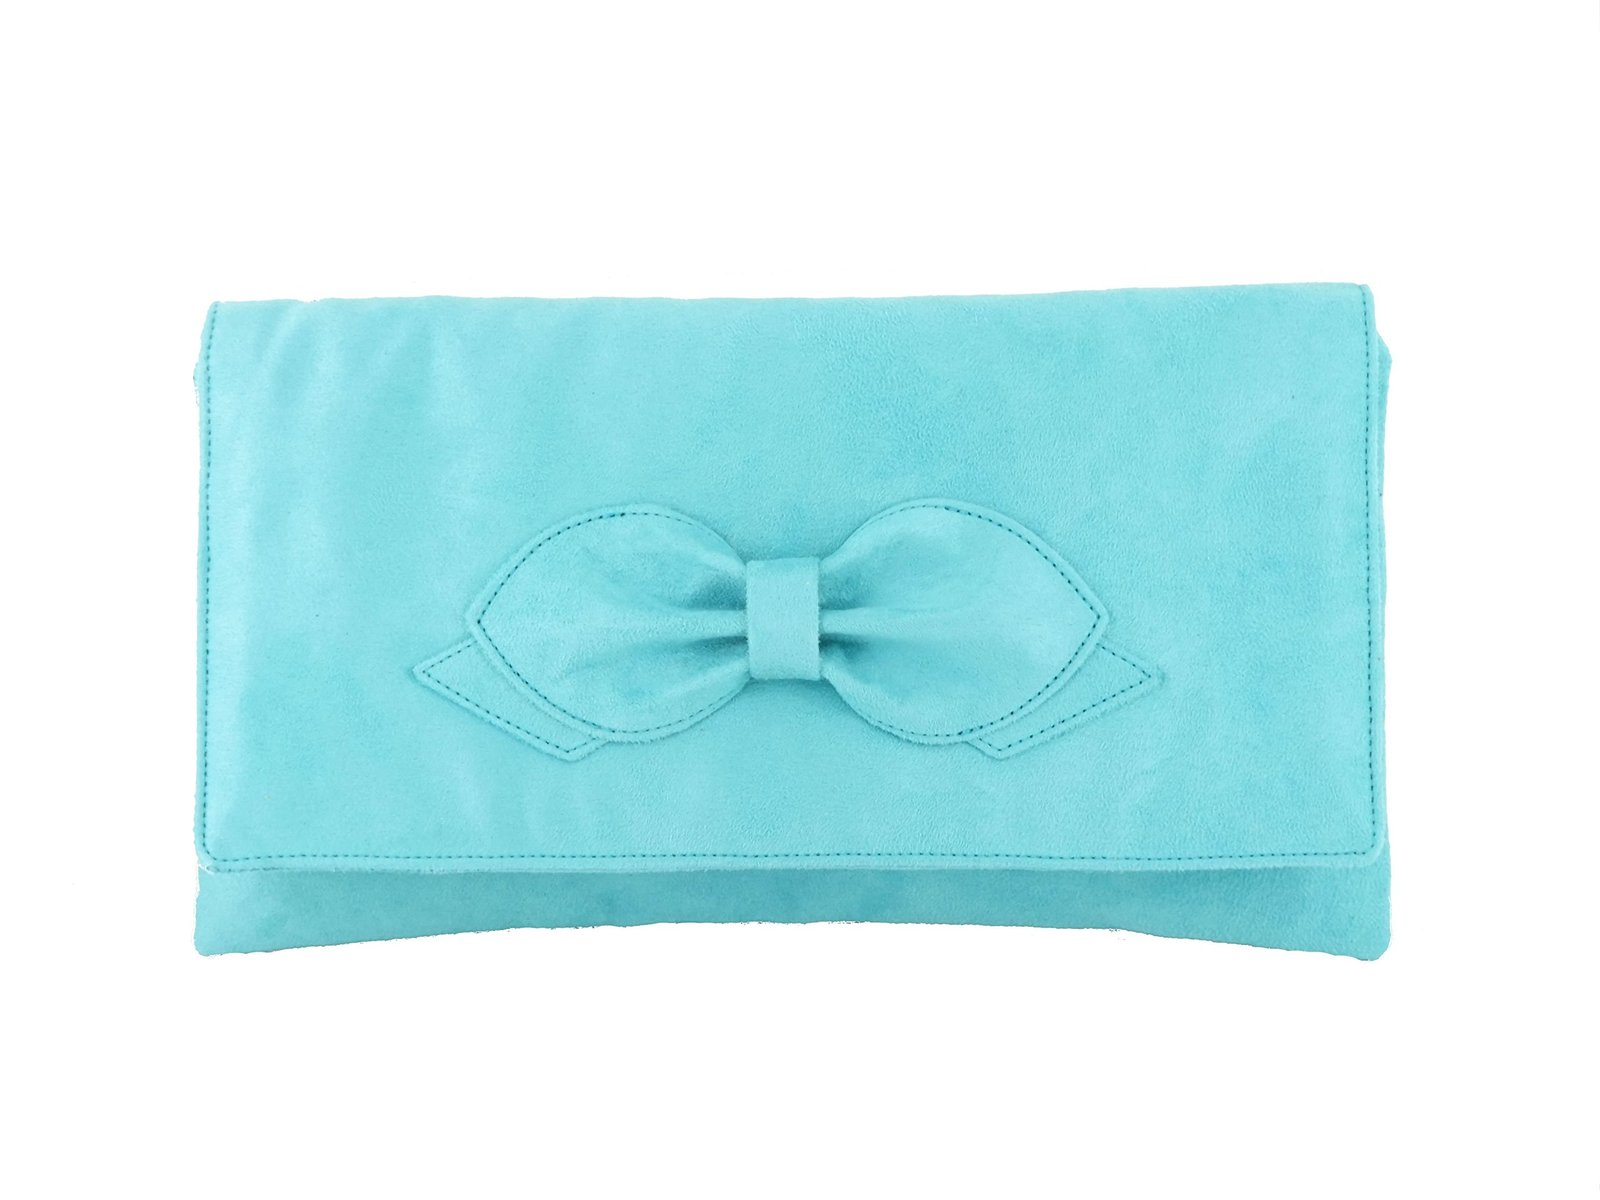 LONI Women's synthetic Suede Bow Clutch Bag Prom Medium Light Turquoise